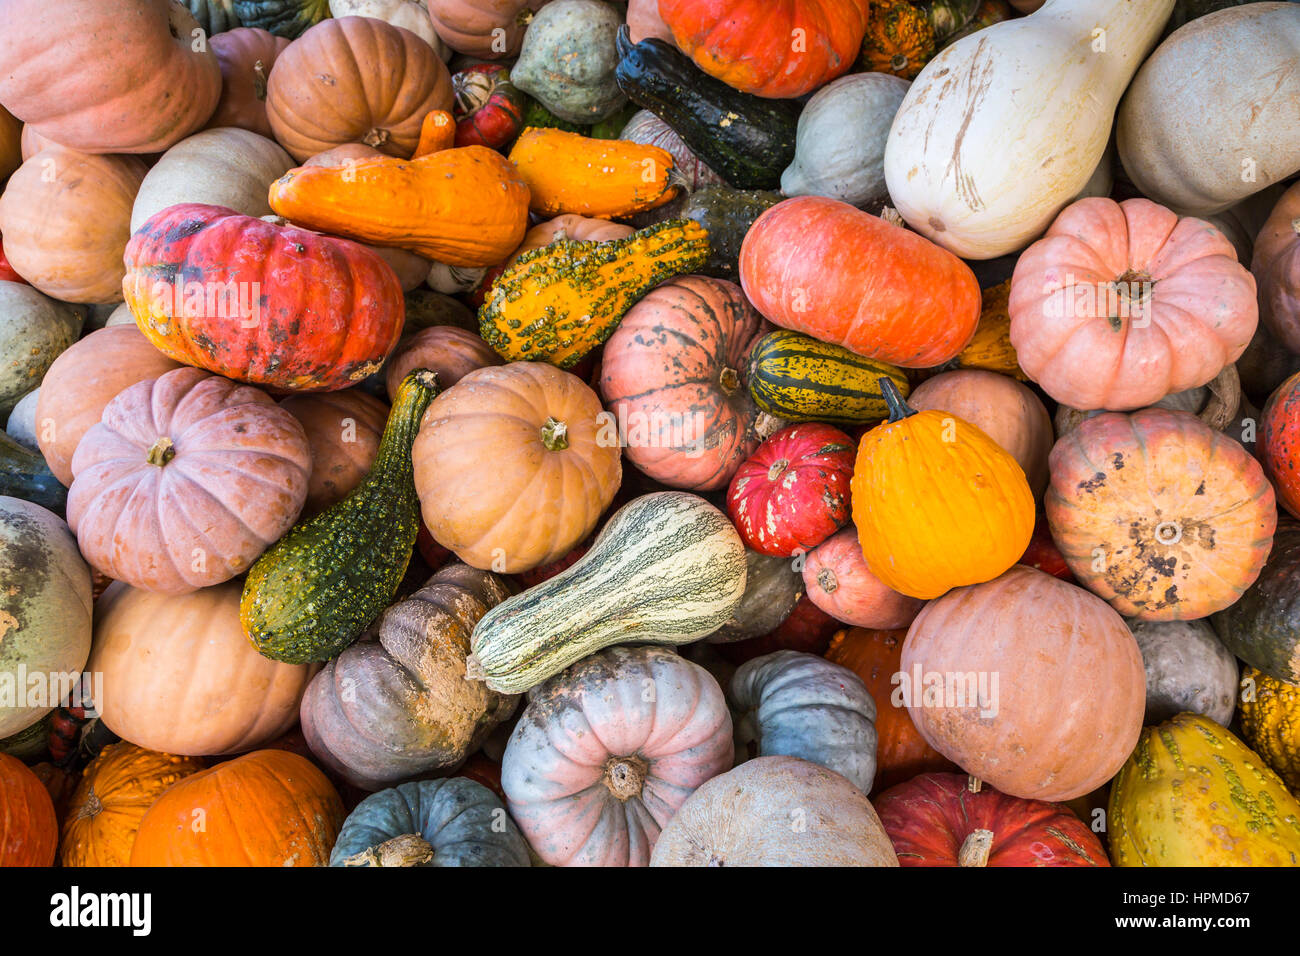 Close up of fall display of pumpkins, gourds and flowers at Hershberger's Farm in Millersburg, Ohio, USA. Stock Photo